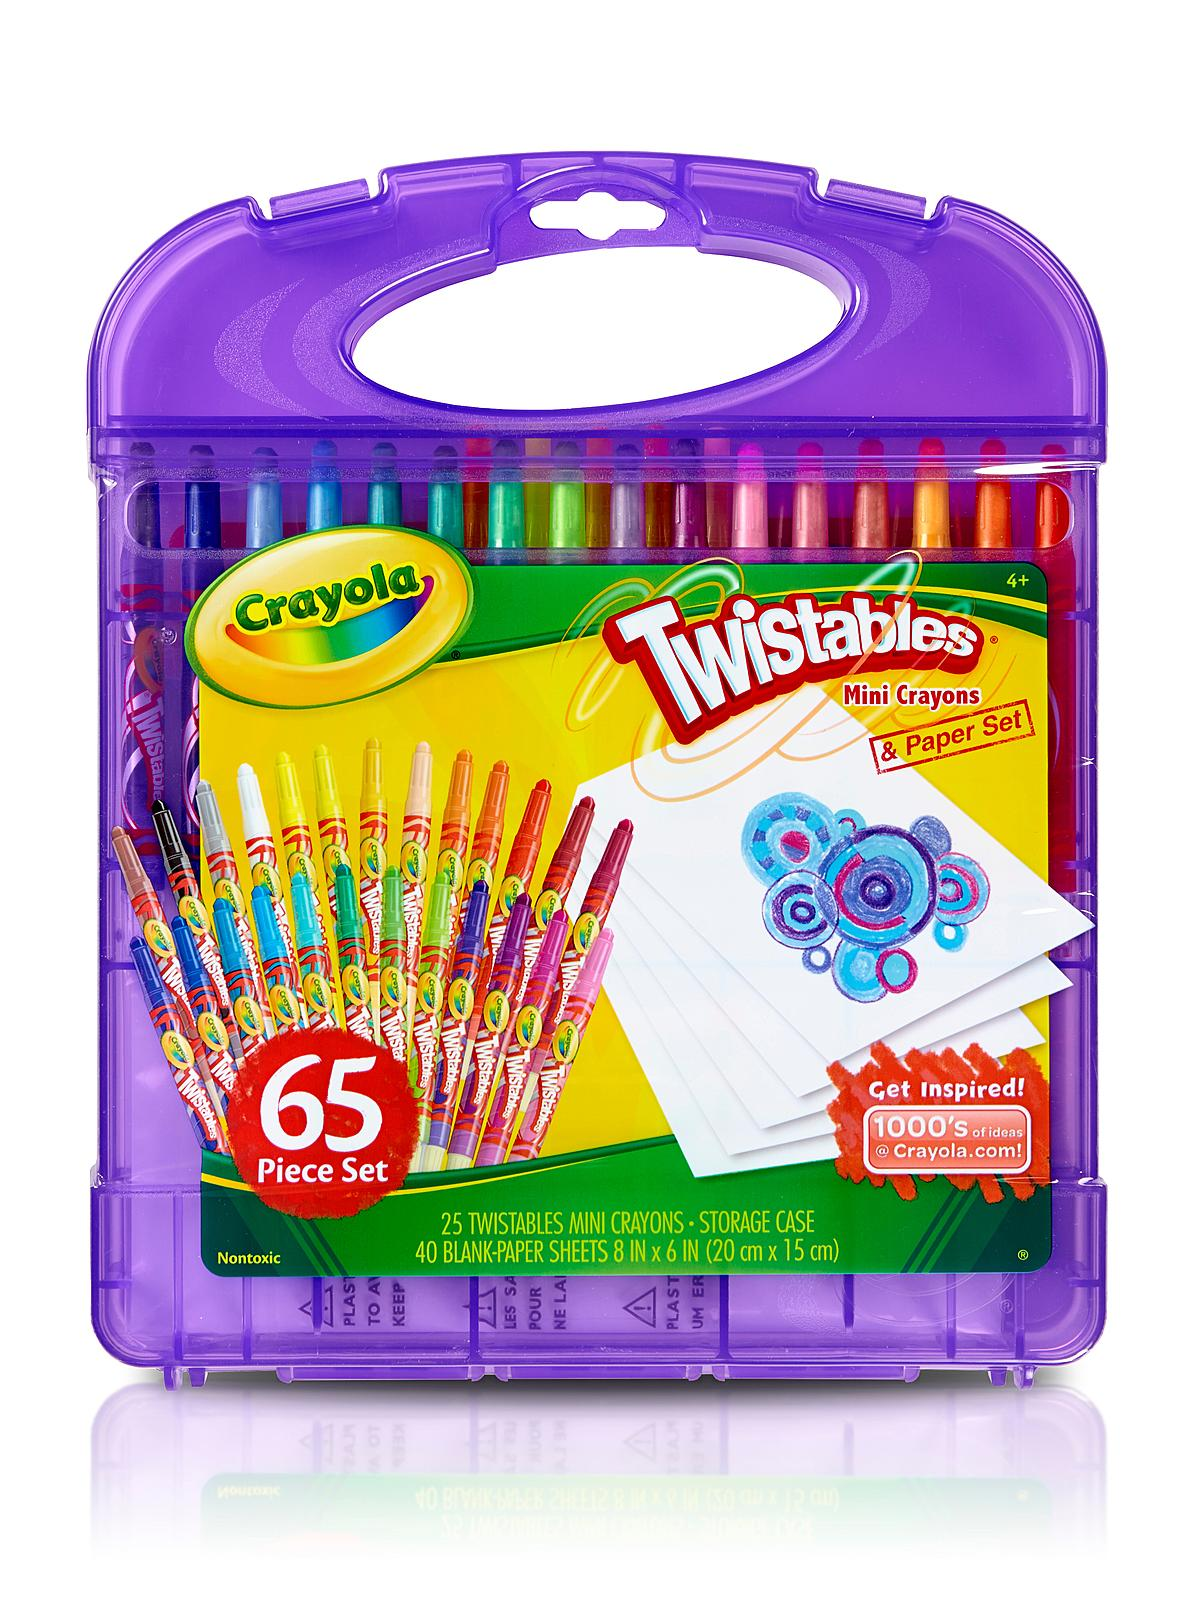 Mini Twistables Crayons & Paper Set